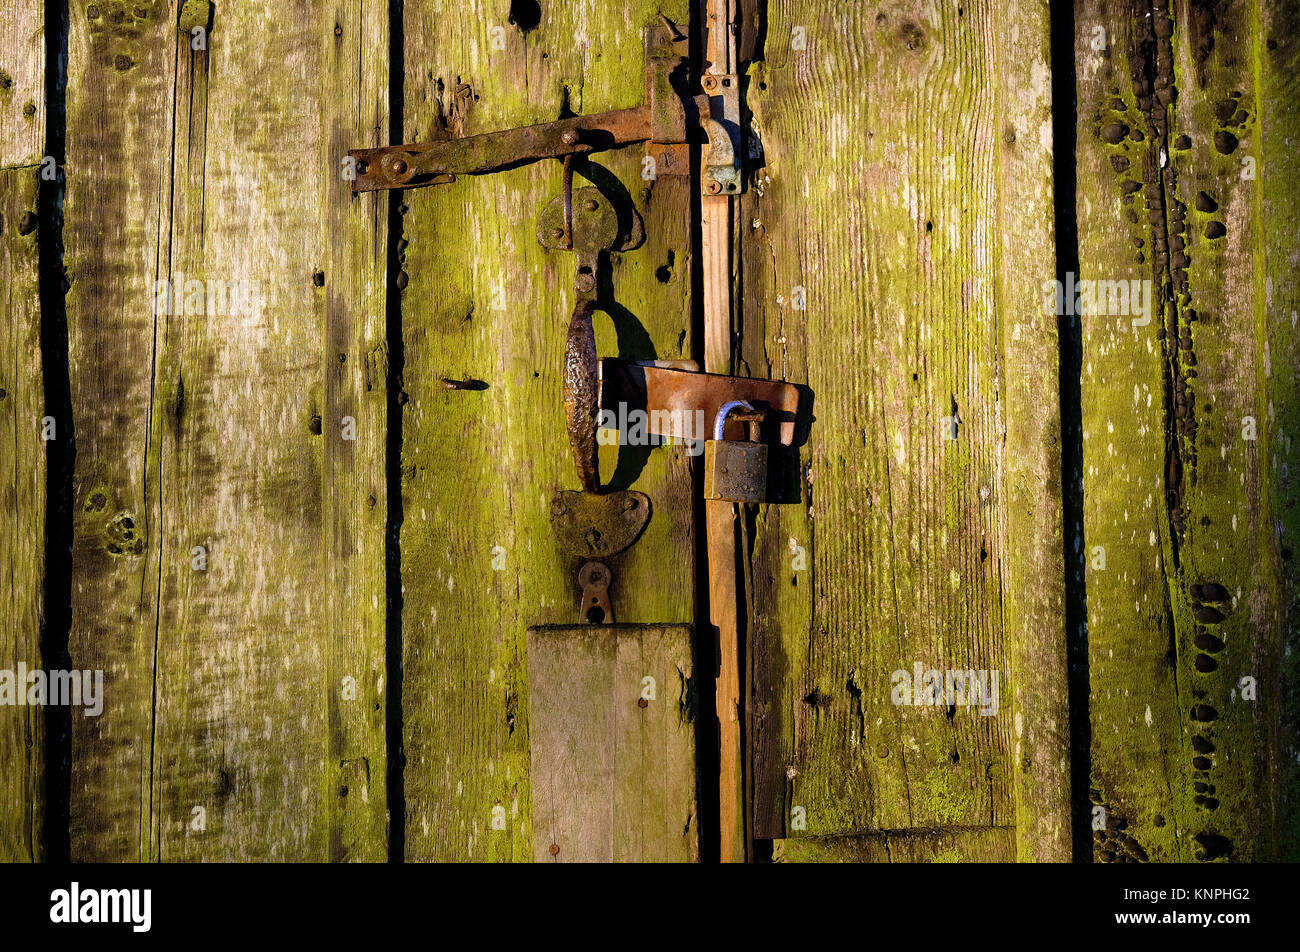 old weathered wooden garden shed door with padlock, norfolk, england Stock Photo